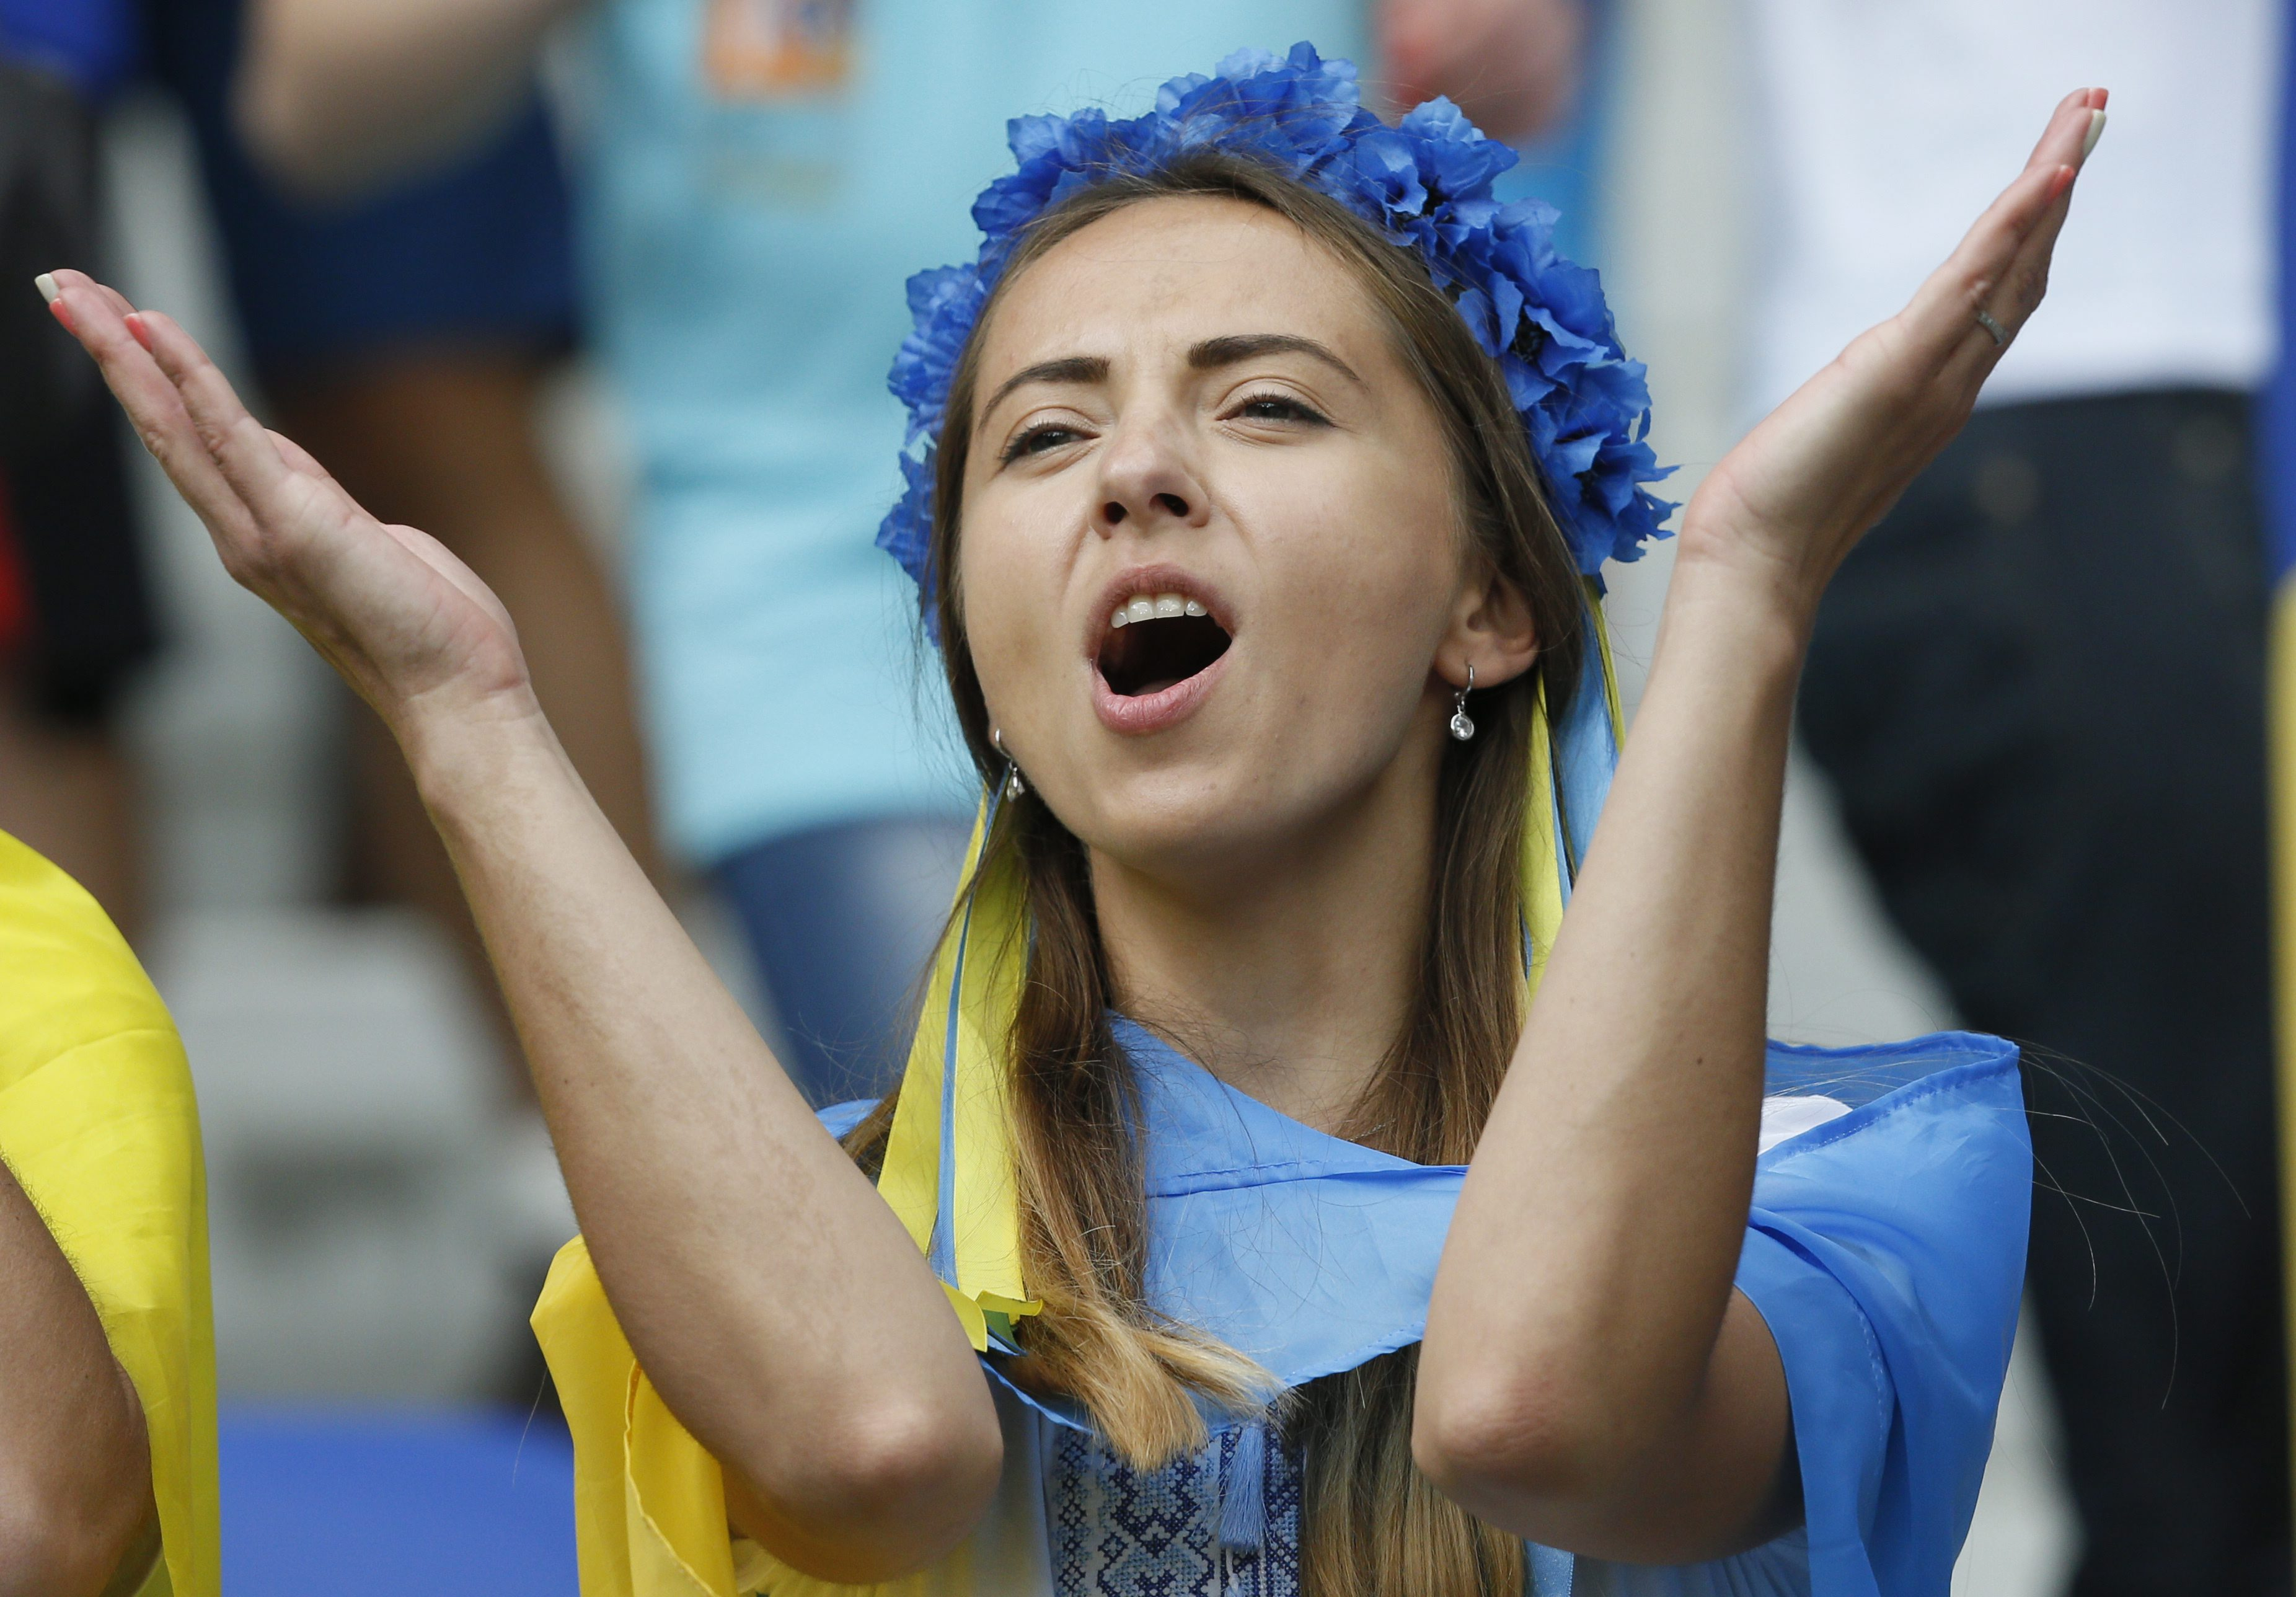 . Lyon (France), 16/06/2016.- A supporter of Ukraine before the UEFA EURO 2016 group C preliminary round match between Ukraine and Northern Ireland at Stade de Lyon in Lyon, France, 16 June 2016. (RESTRICTIONS APPLY: For editorial news reporting purposes only. Not used for commercial or marketing purposes without prior written approval of UEFA. Images must appear as still images and must not emulate match action video footage. Photographs published in online publications (whether via the Internet or otherwise) shall have an interval of at least 20 seconds between the posting.) (Francia, Irlanda, Ucrania) EFE/EPA/SERGEY DOLZHENKO EDITORIAL USE ONLY